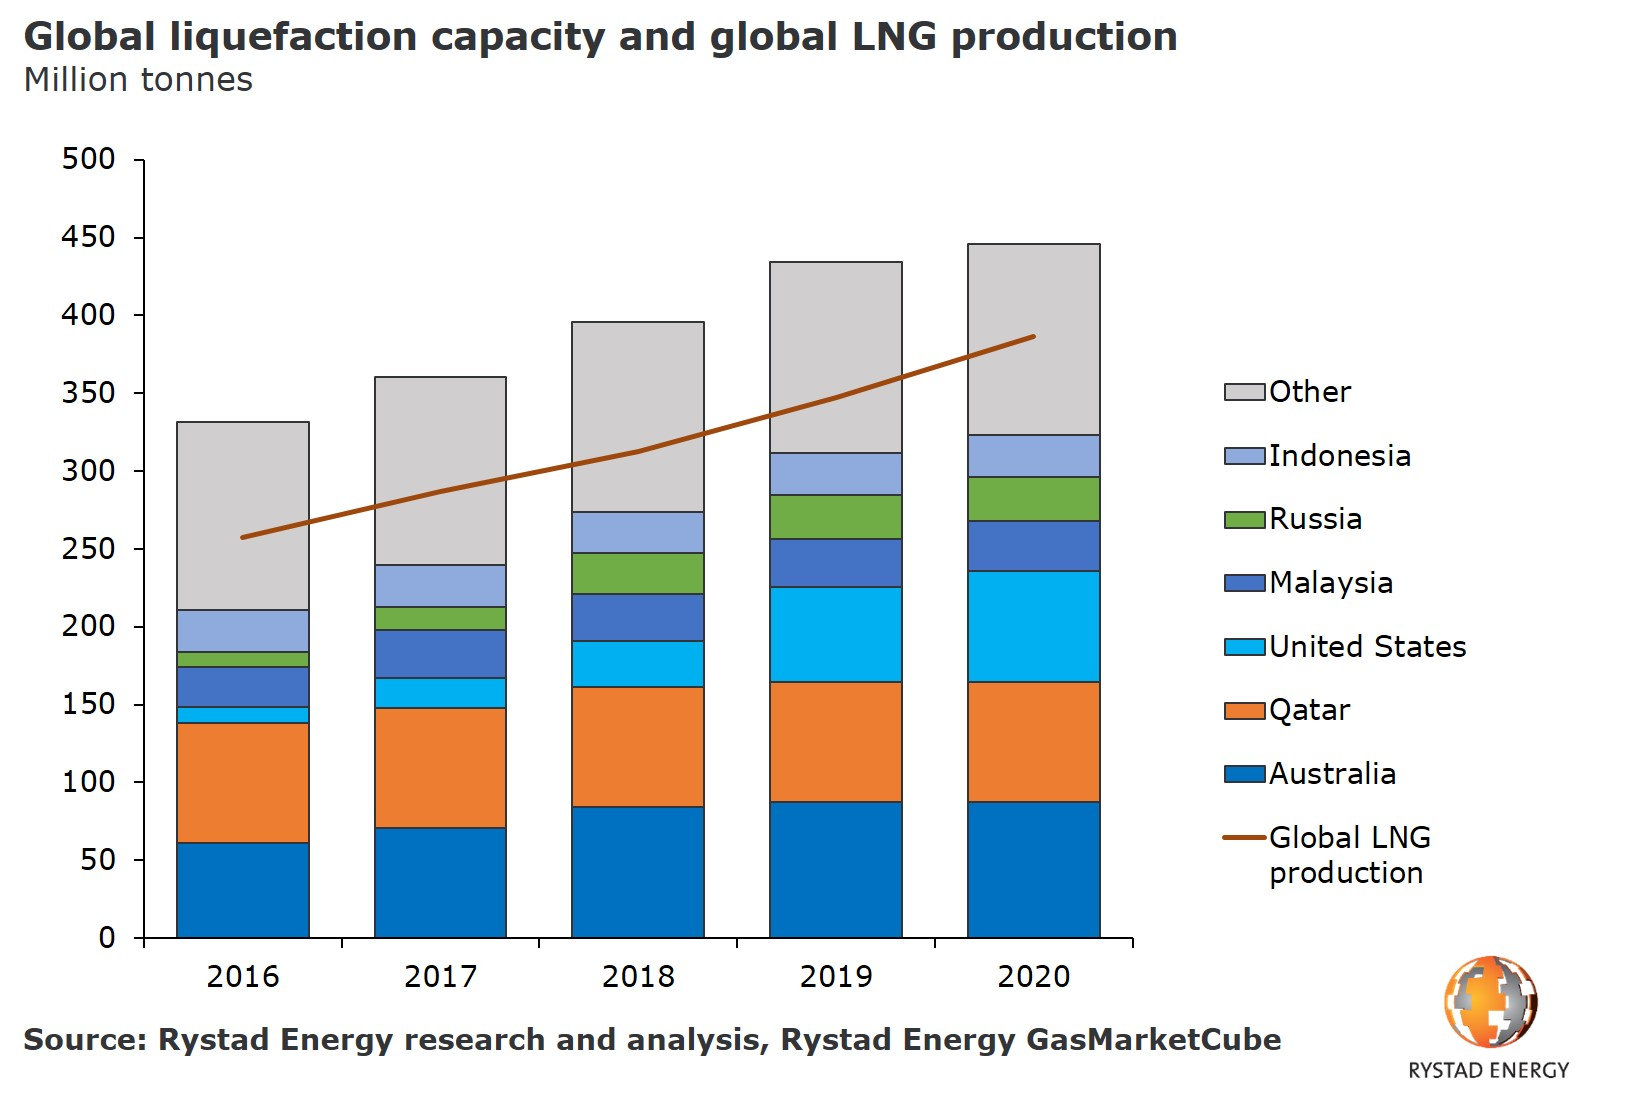 A bar chart showing the global liquefaction capacity and global LNG production in Million tonnes from 2016 to 2020. Source: Rystad Energy GasMarketCube